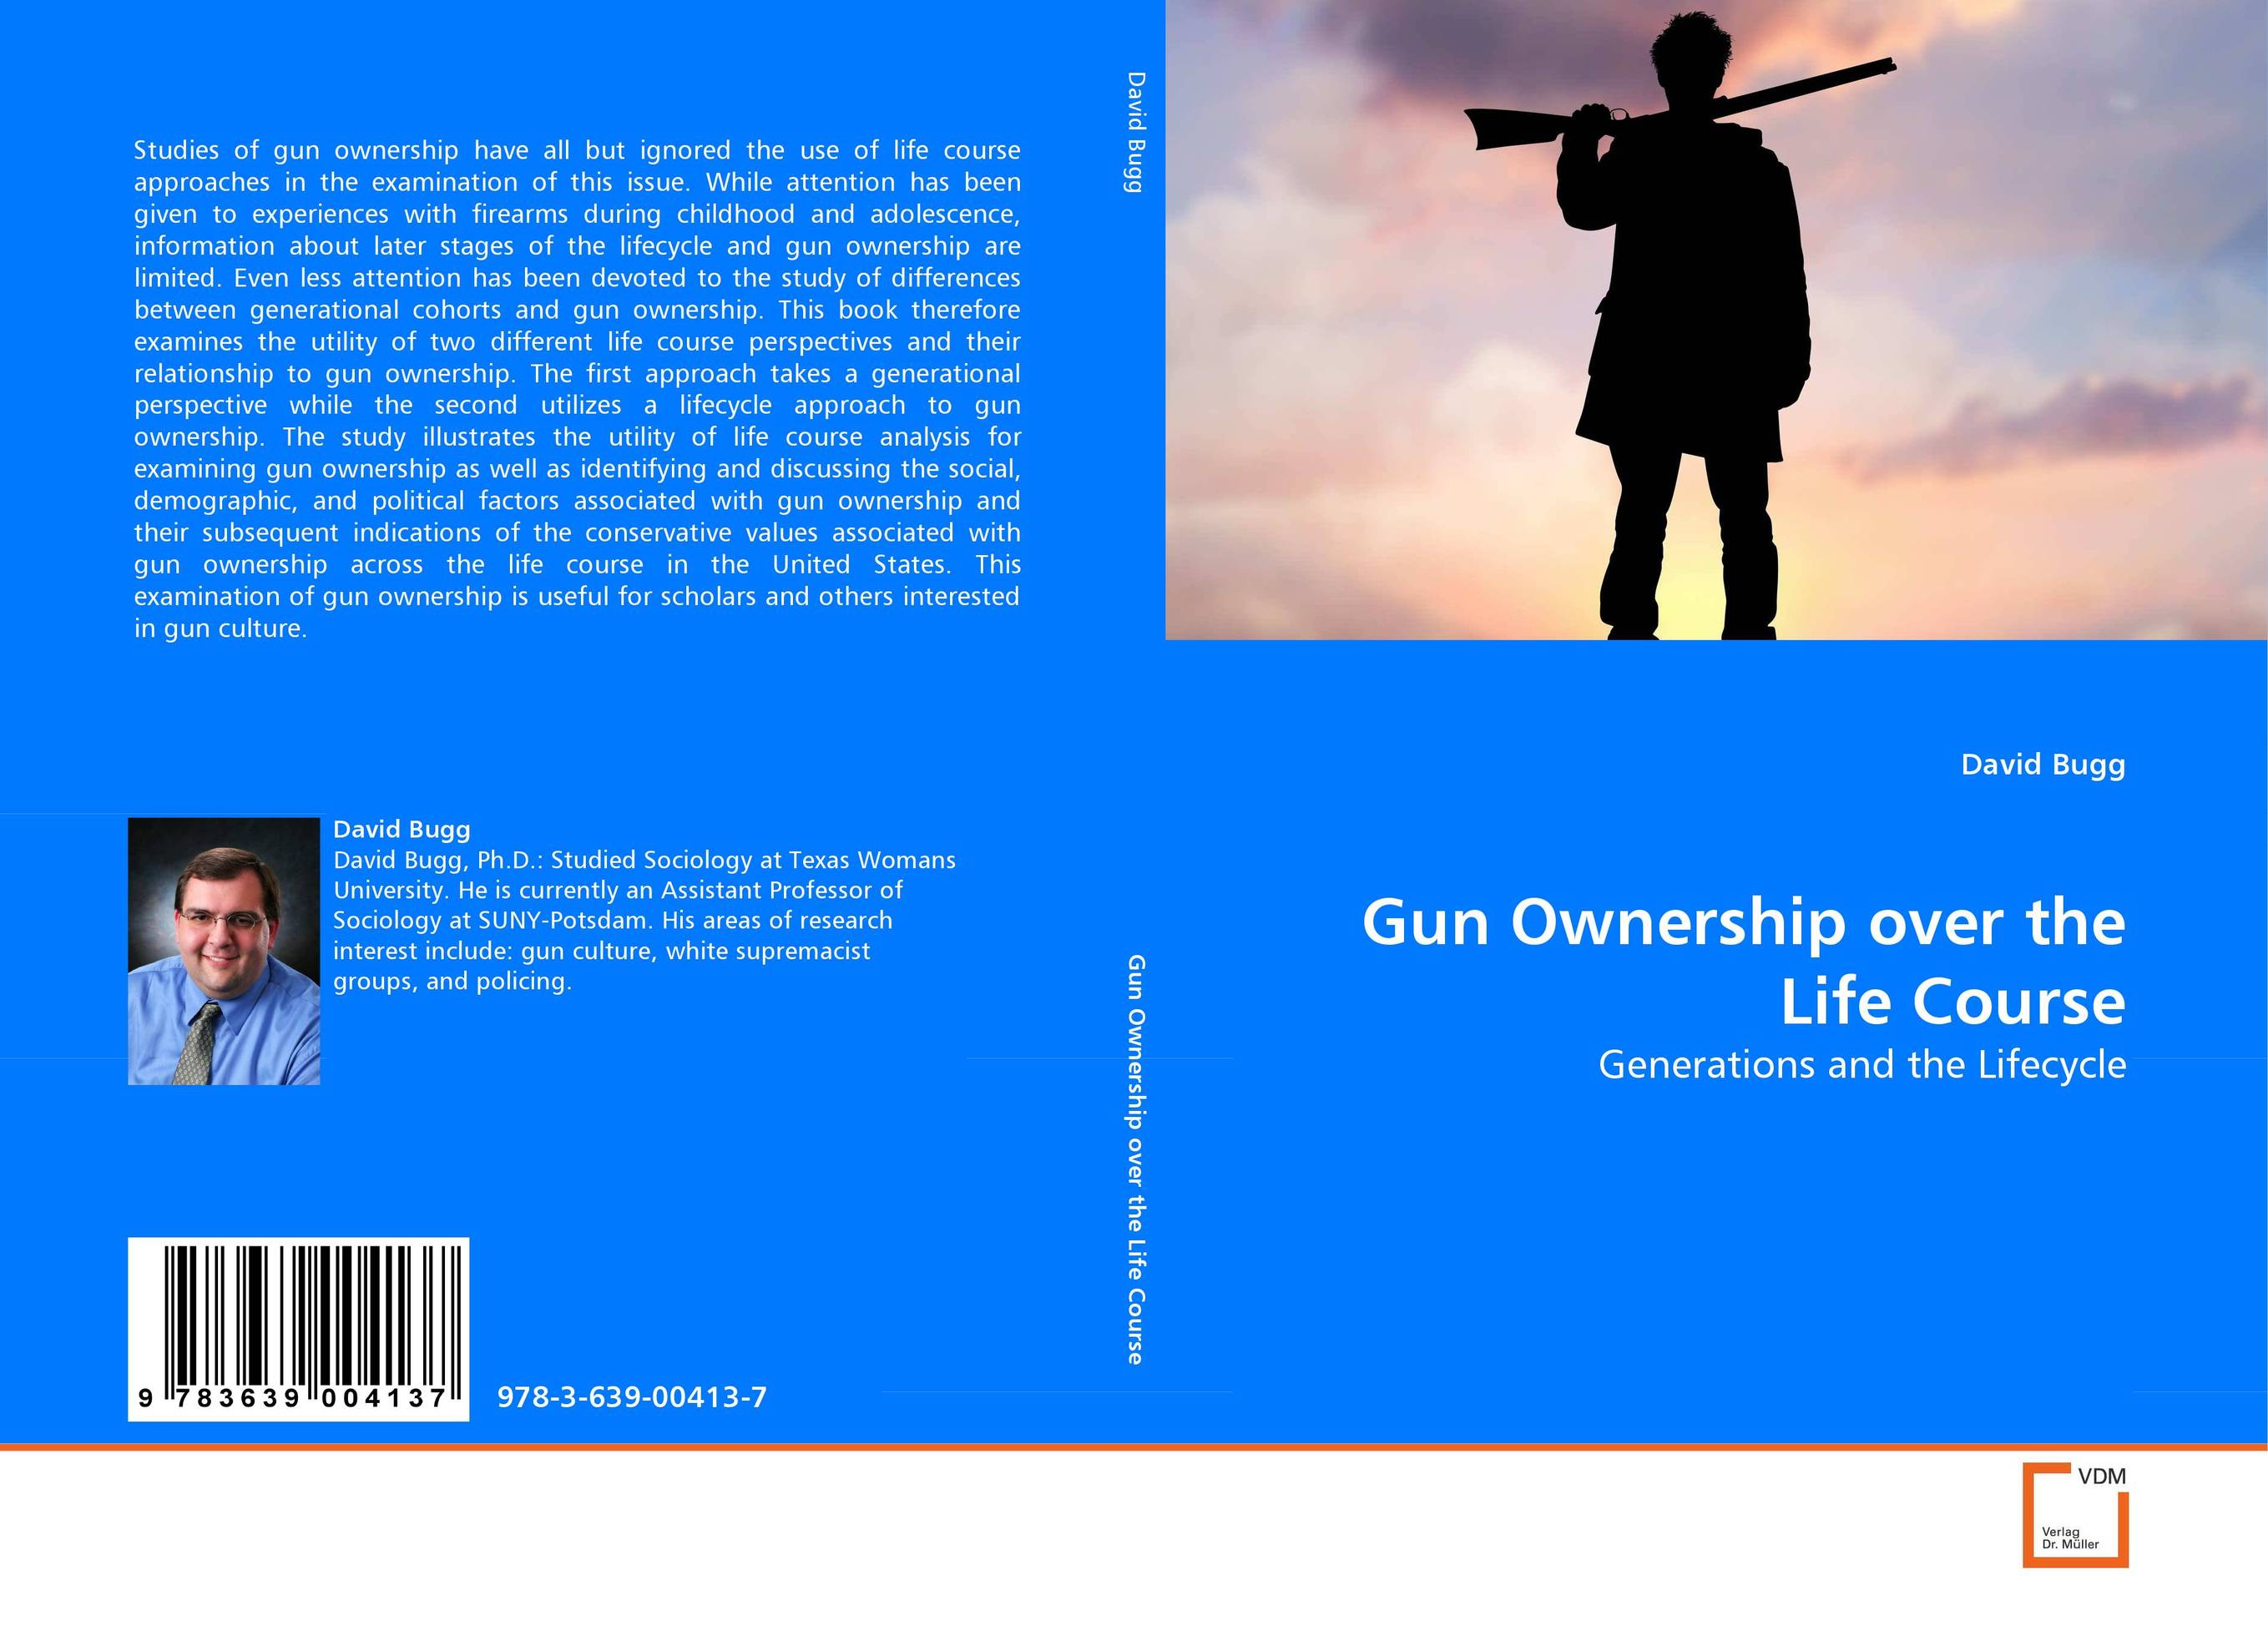 Gun Ownership over the Life Course the concept of collective ownership in ship